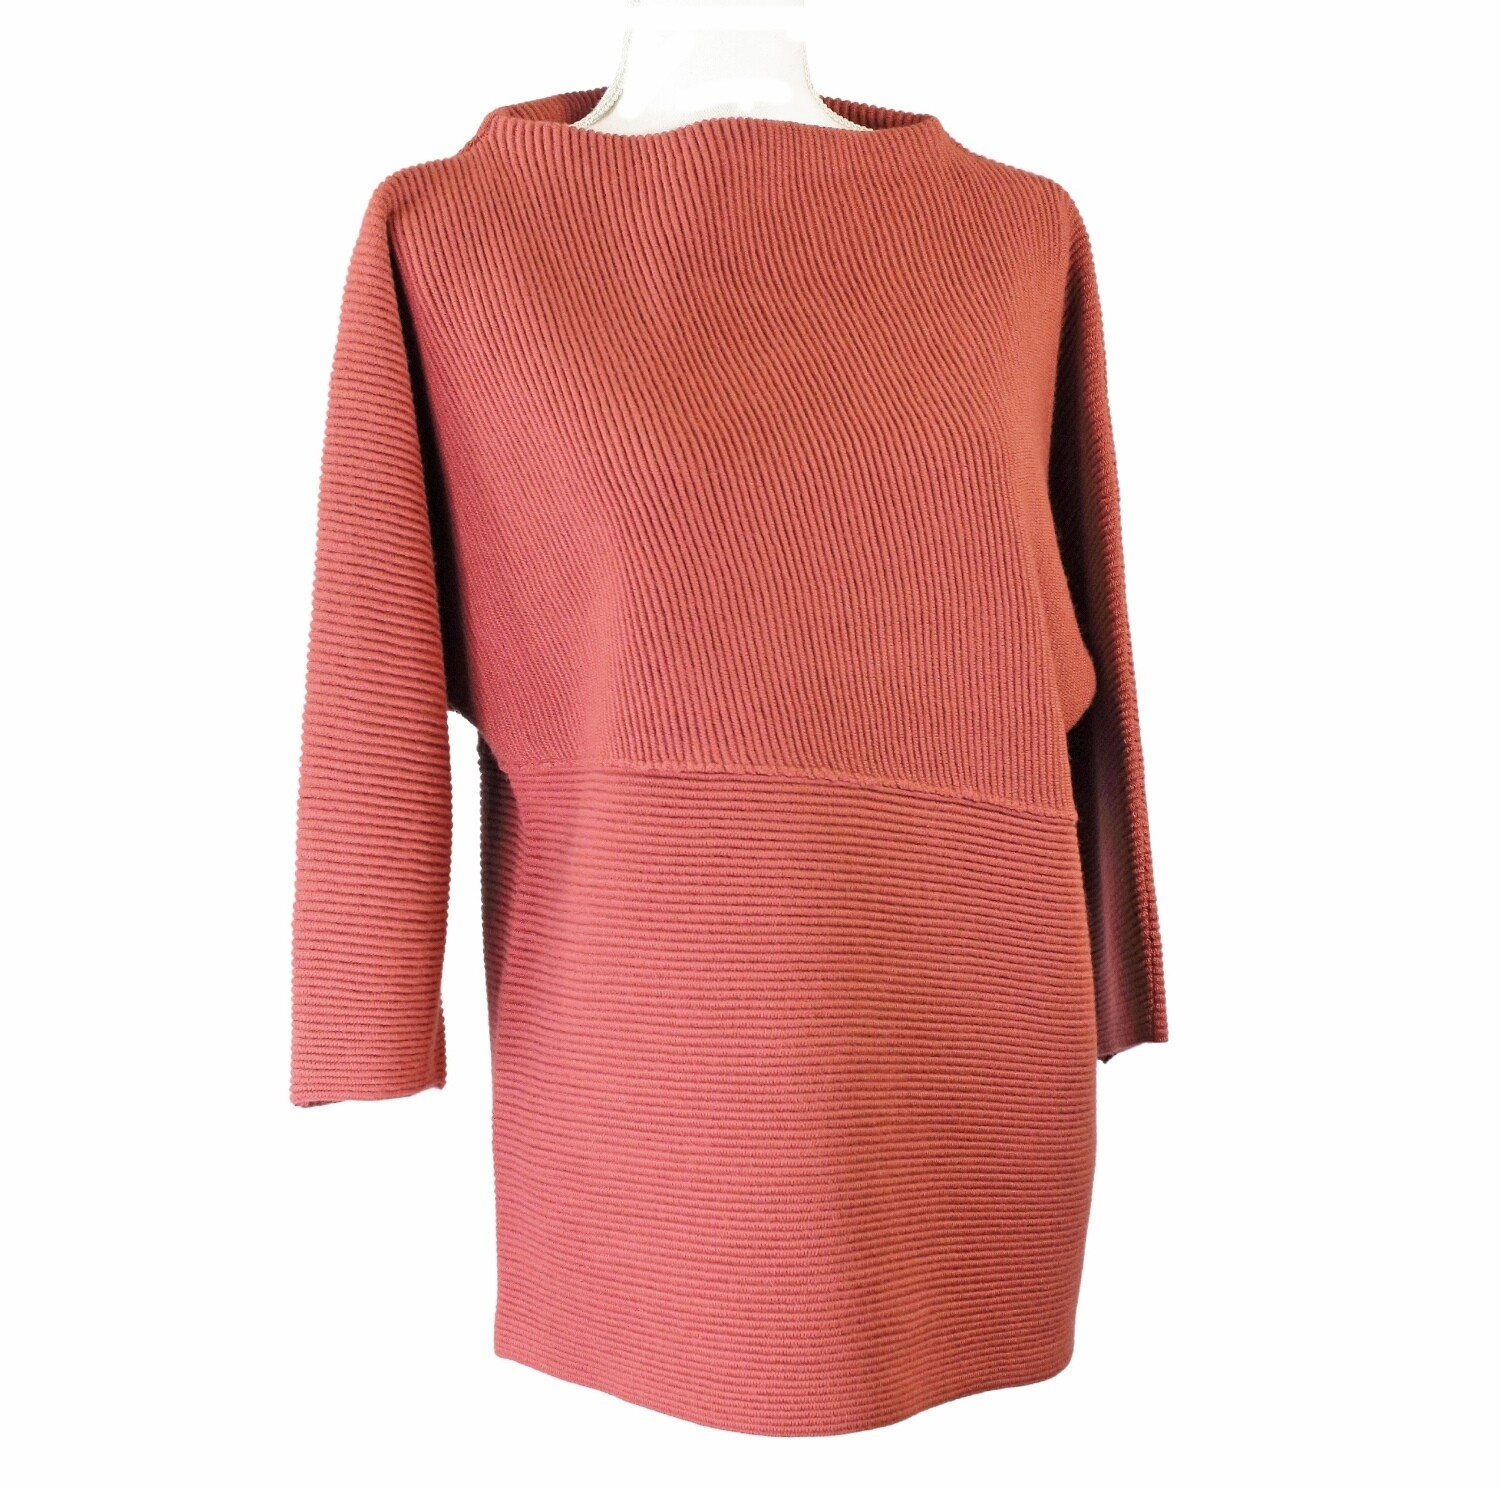 Merino Wool Ribbed Jumper by See Saw